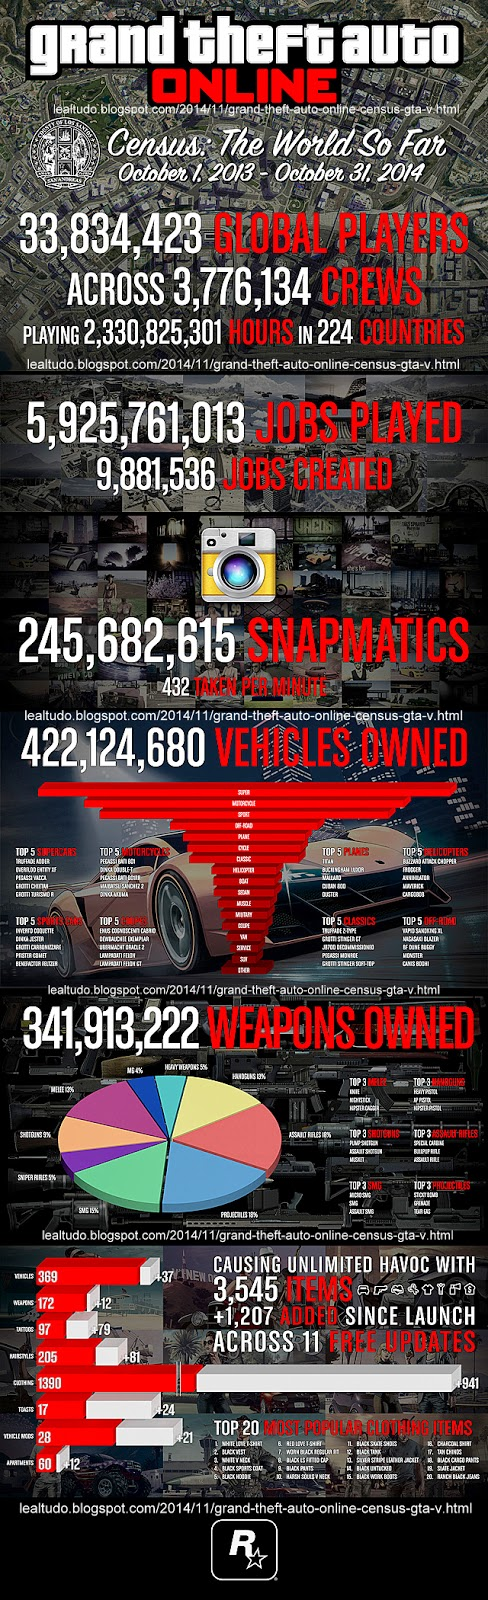 GRAND THEFT AUTO ONLINE CENSUS GTA V OCTOBER 1st 2013 TO OCTOBER 31st 2014 - Image Infografic Outubro - LeaLTudo